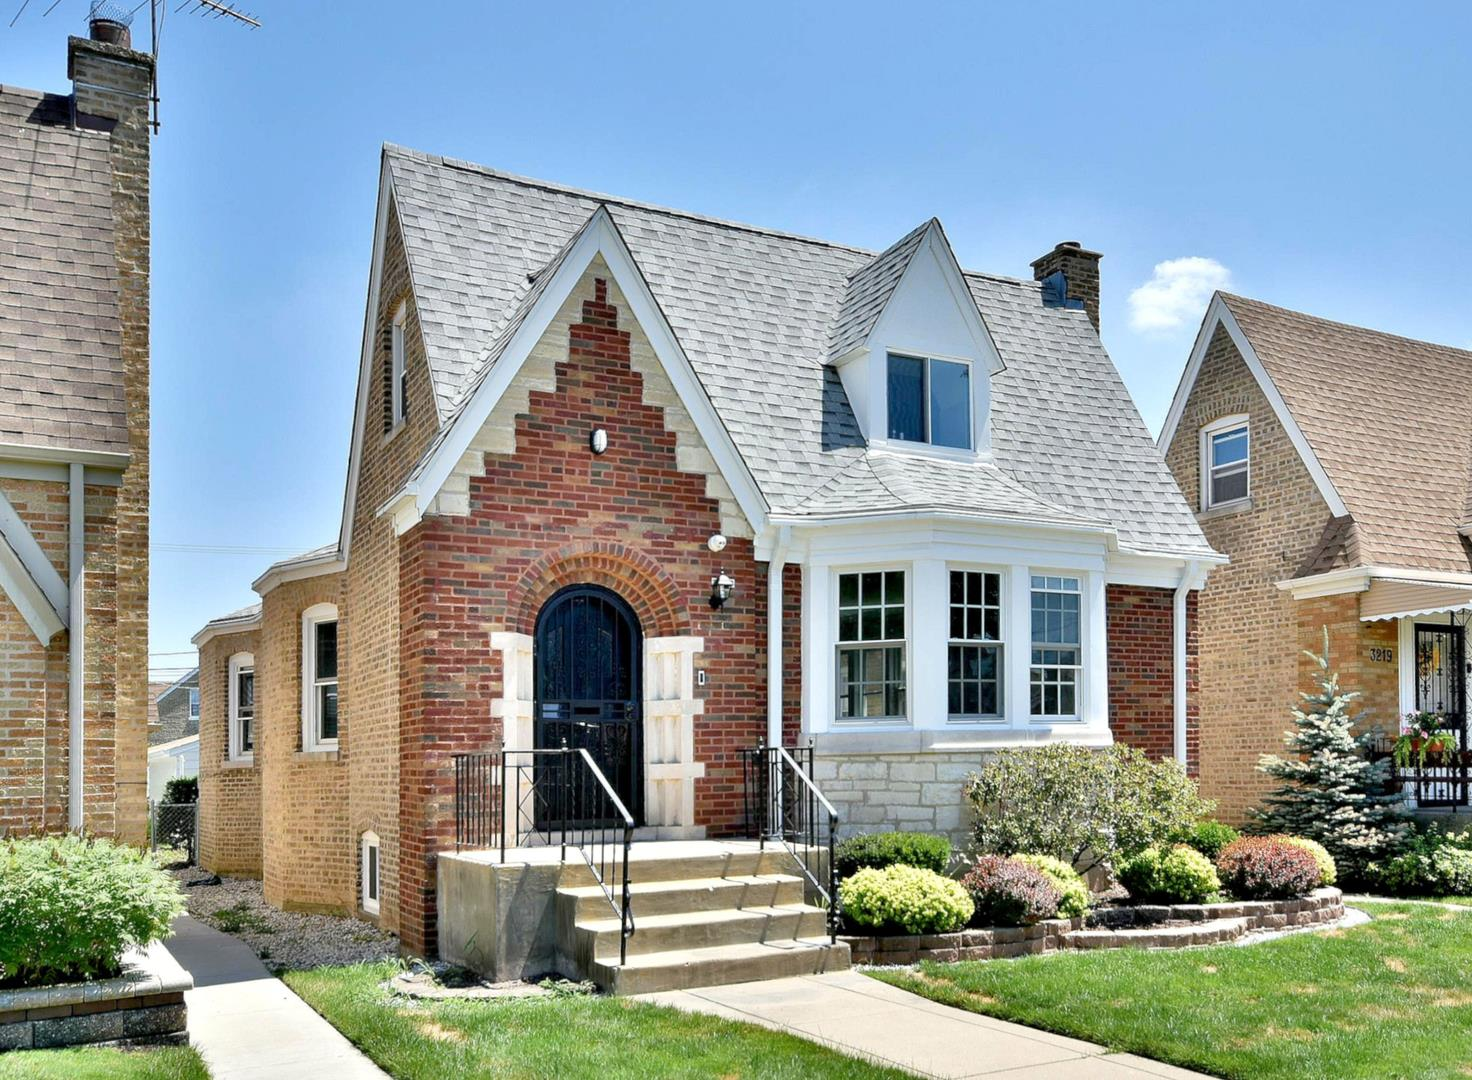 3223 N Newland Avenue, Chicago, IL 60634 - #: 10923064